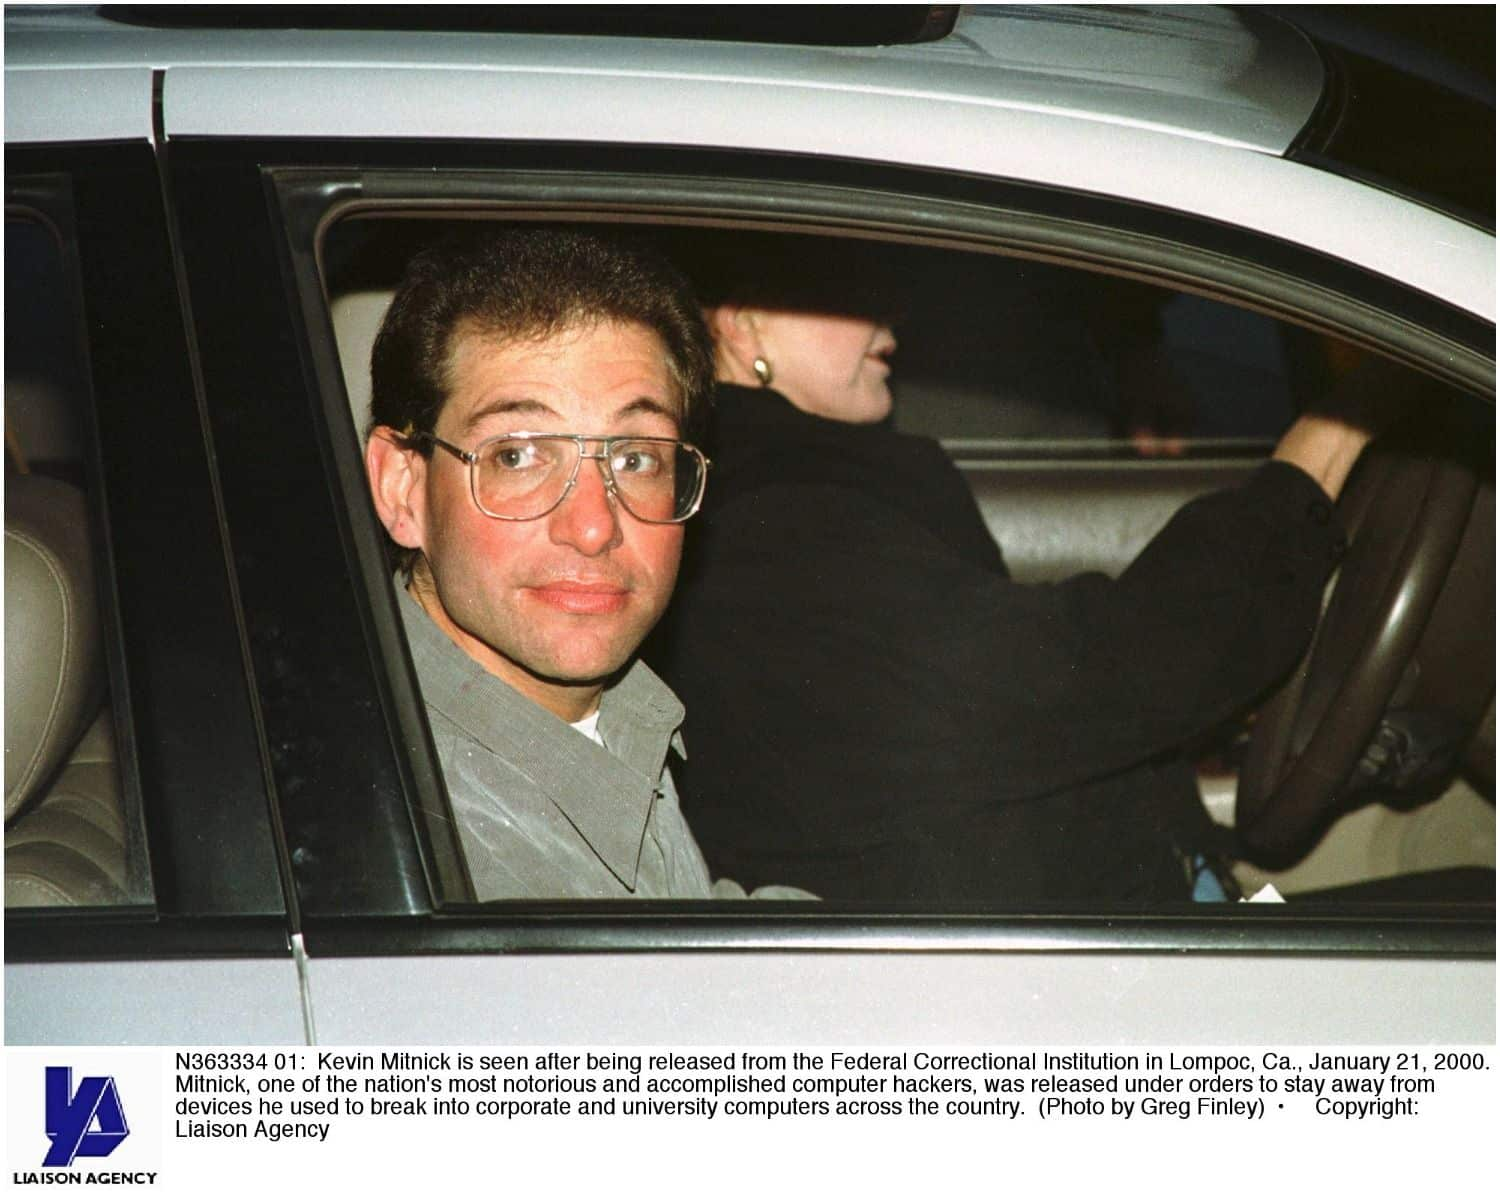 what is the net worth of Kevin Mitnick